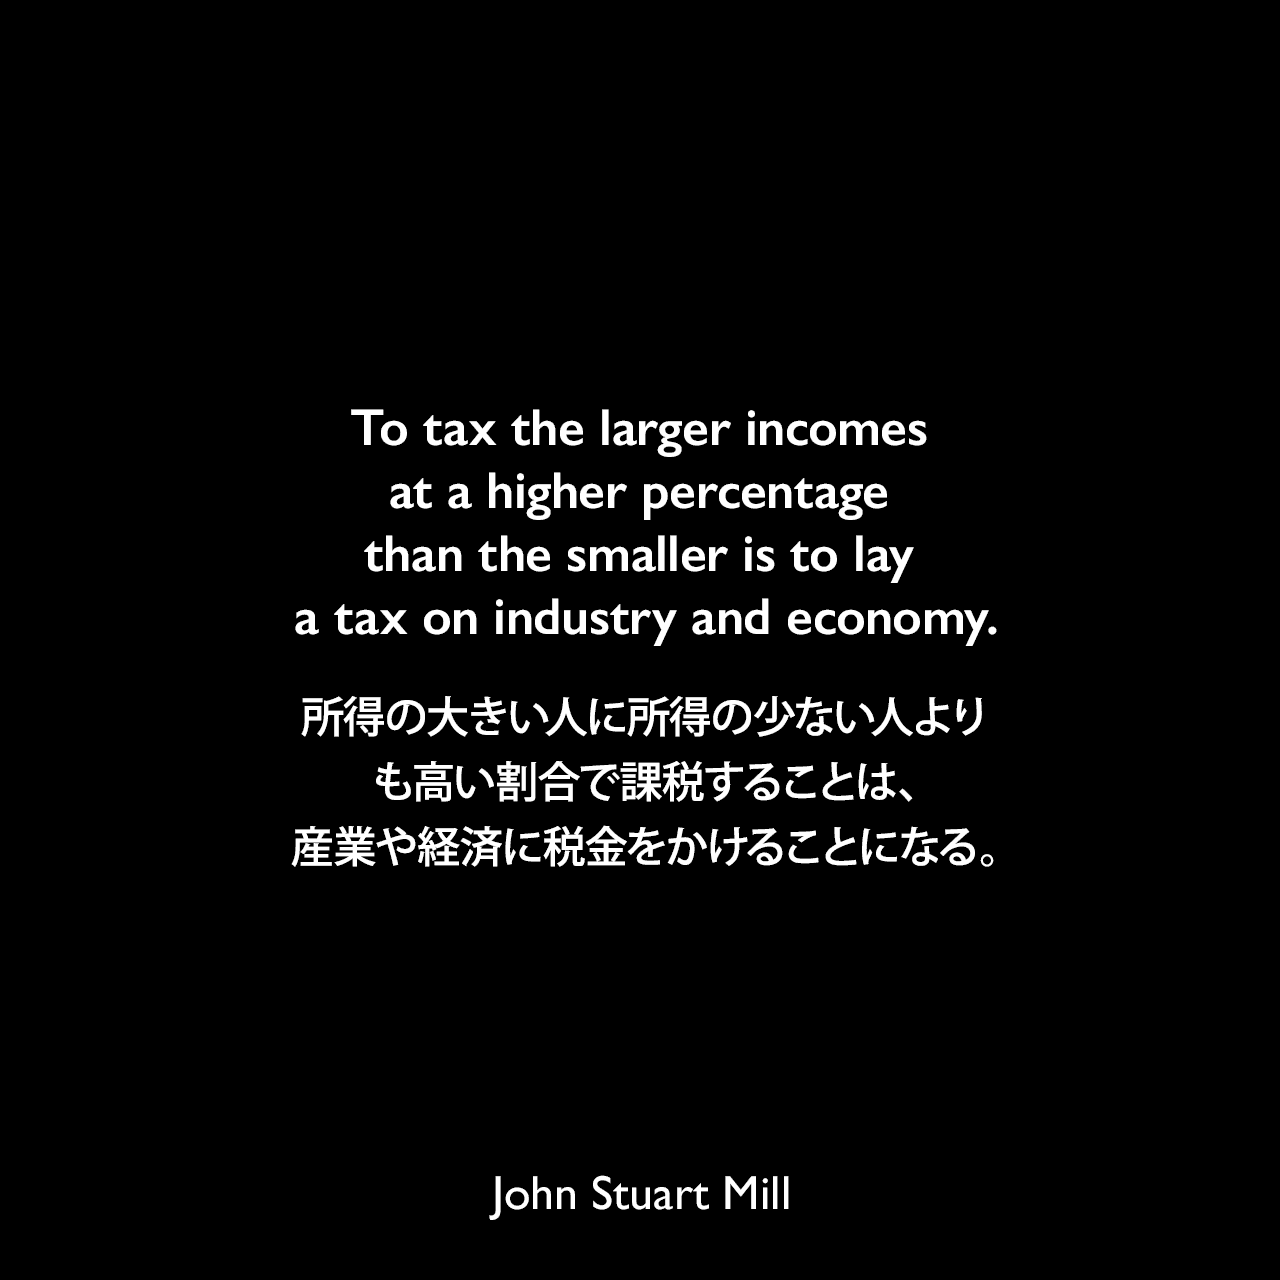 To tax the larger incomes at a higher percentage than the smaller is to lay a tax on industry and economy.所得の大きい人に所得の少ない人よりも高い割合で課税することは、産業や経済に税金をかけることになる。- ジョン・スチュアート・ミルによる本「Principles of Political Economy」よりJohn Stuart Mill